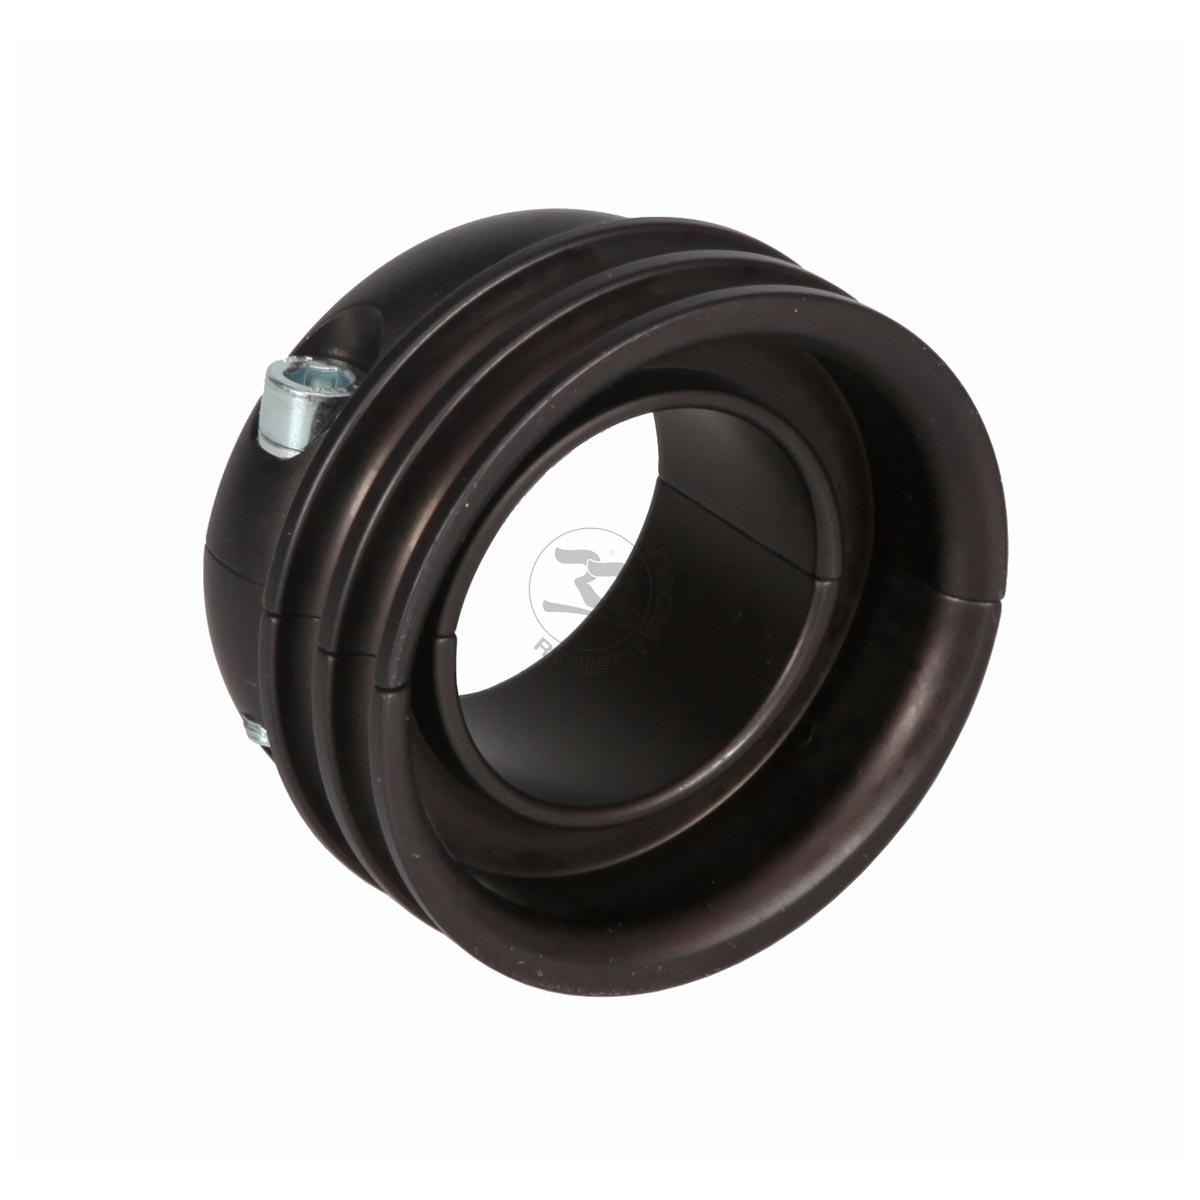 Axle Pulley 40mm BLACK for Water Pump